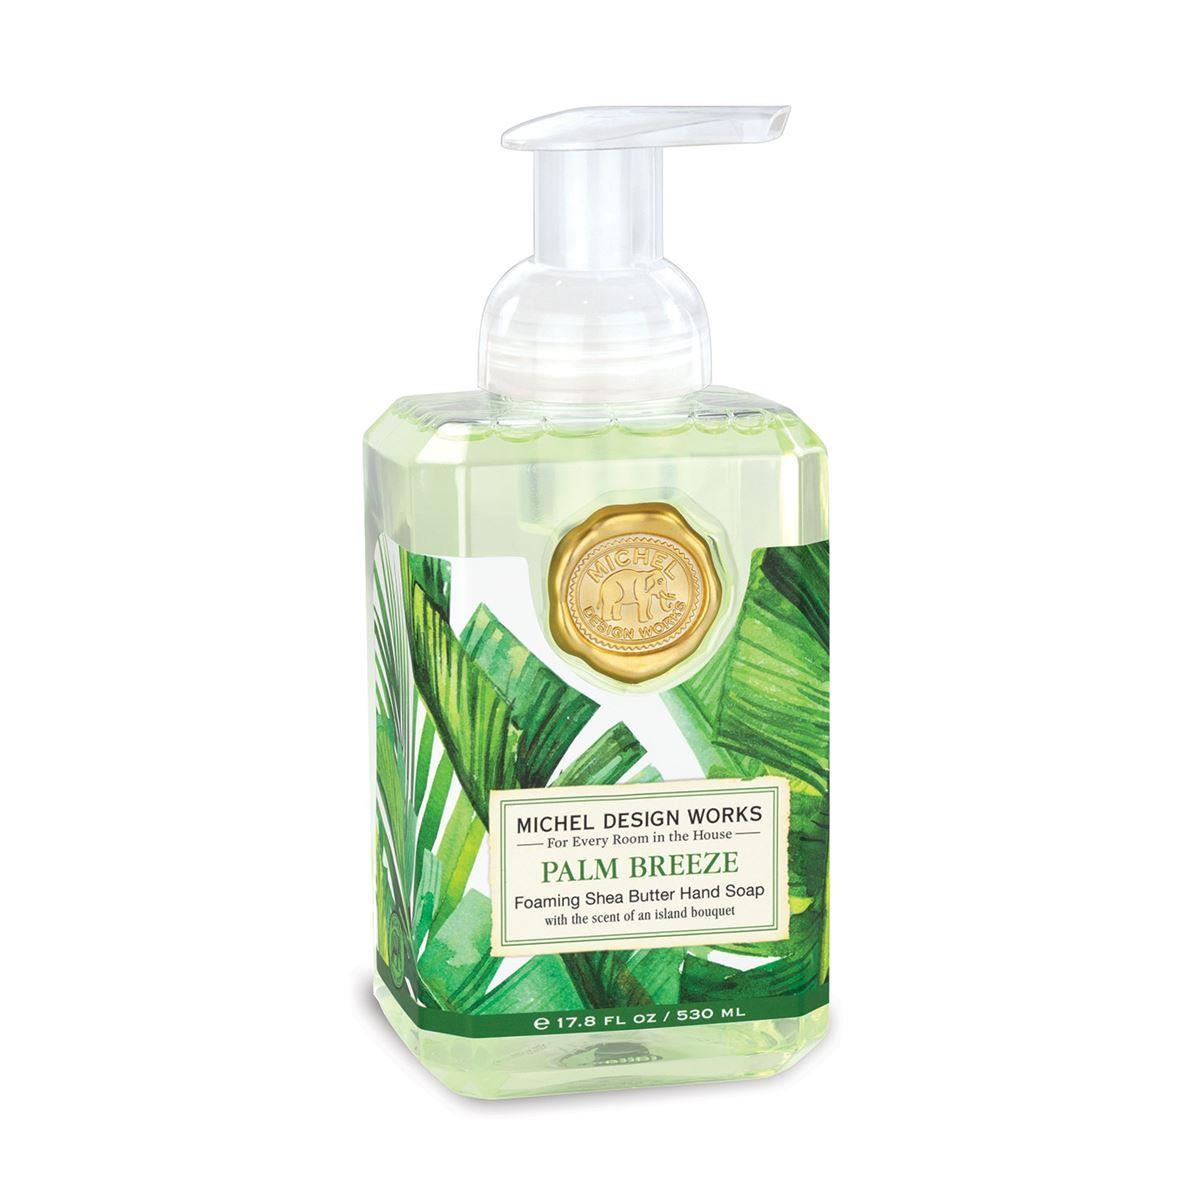 Palm Breeze Foaming Hand Soap - Boutique Marie Dumas